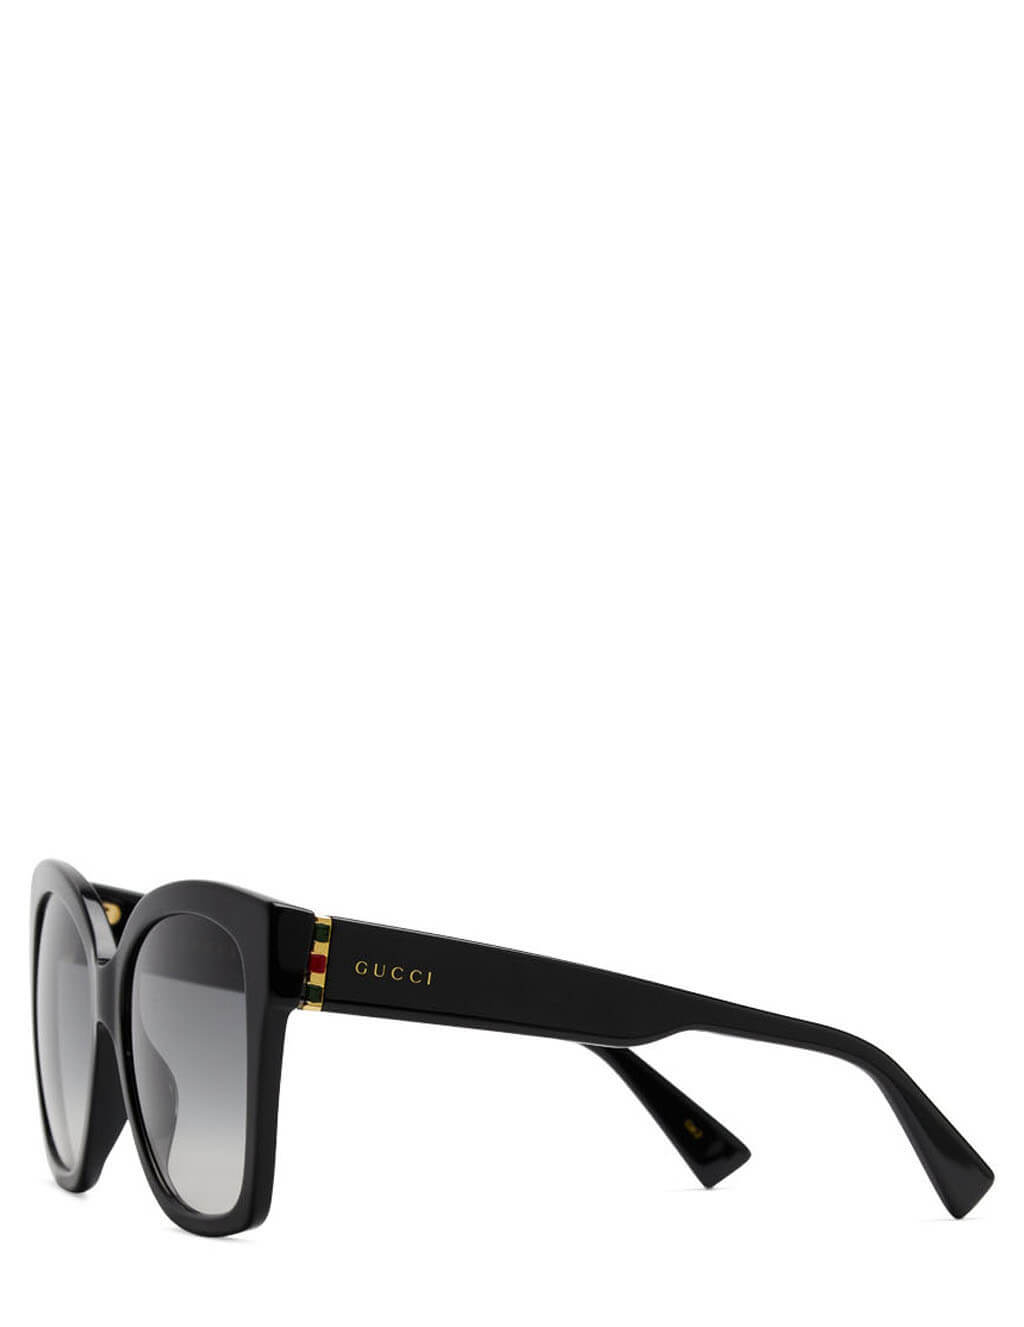 Women's Gucci Eyewear Oversized Round Sunglasses in Black. GG0459S-001